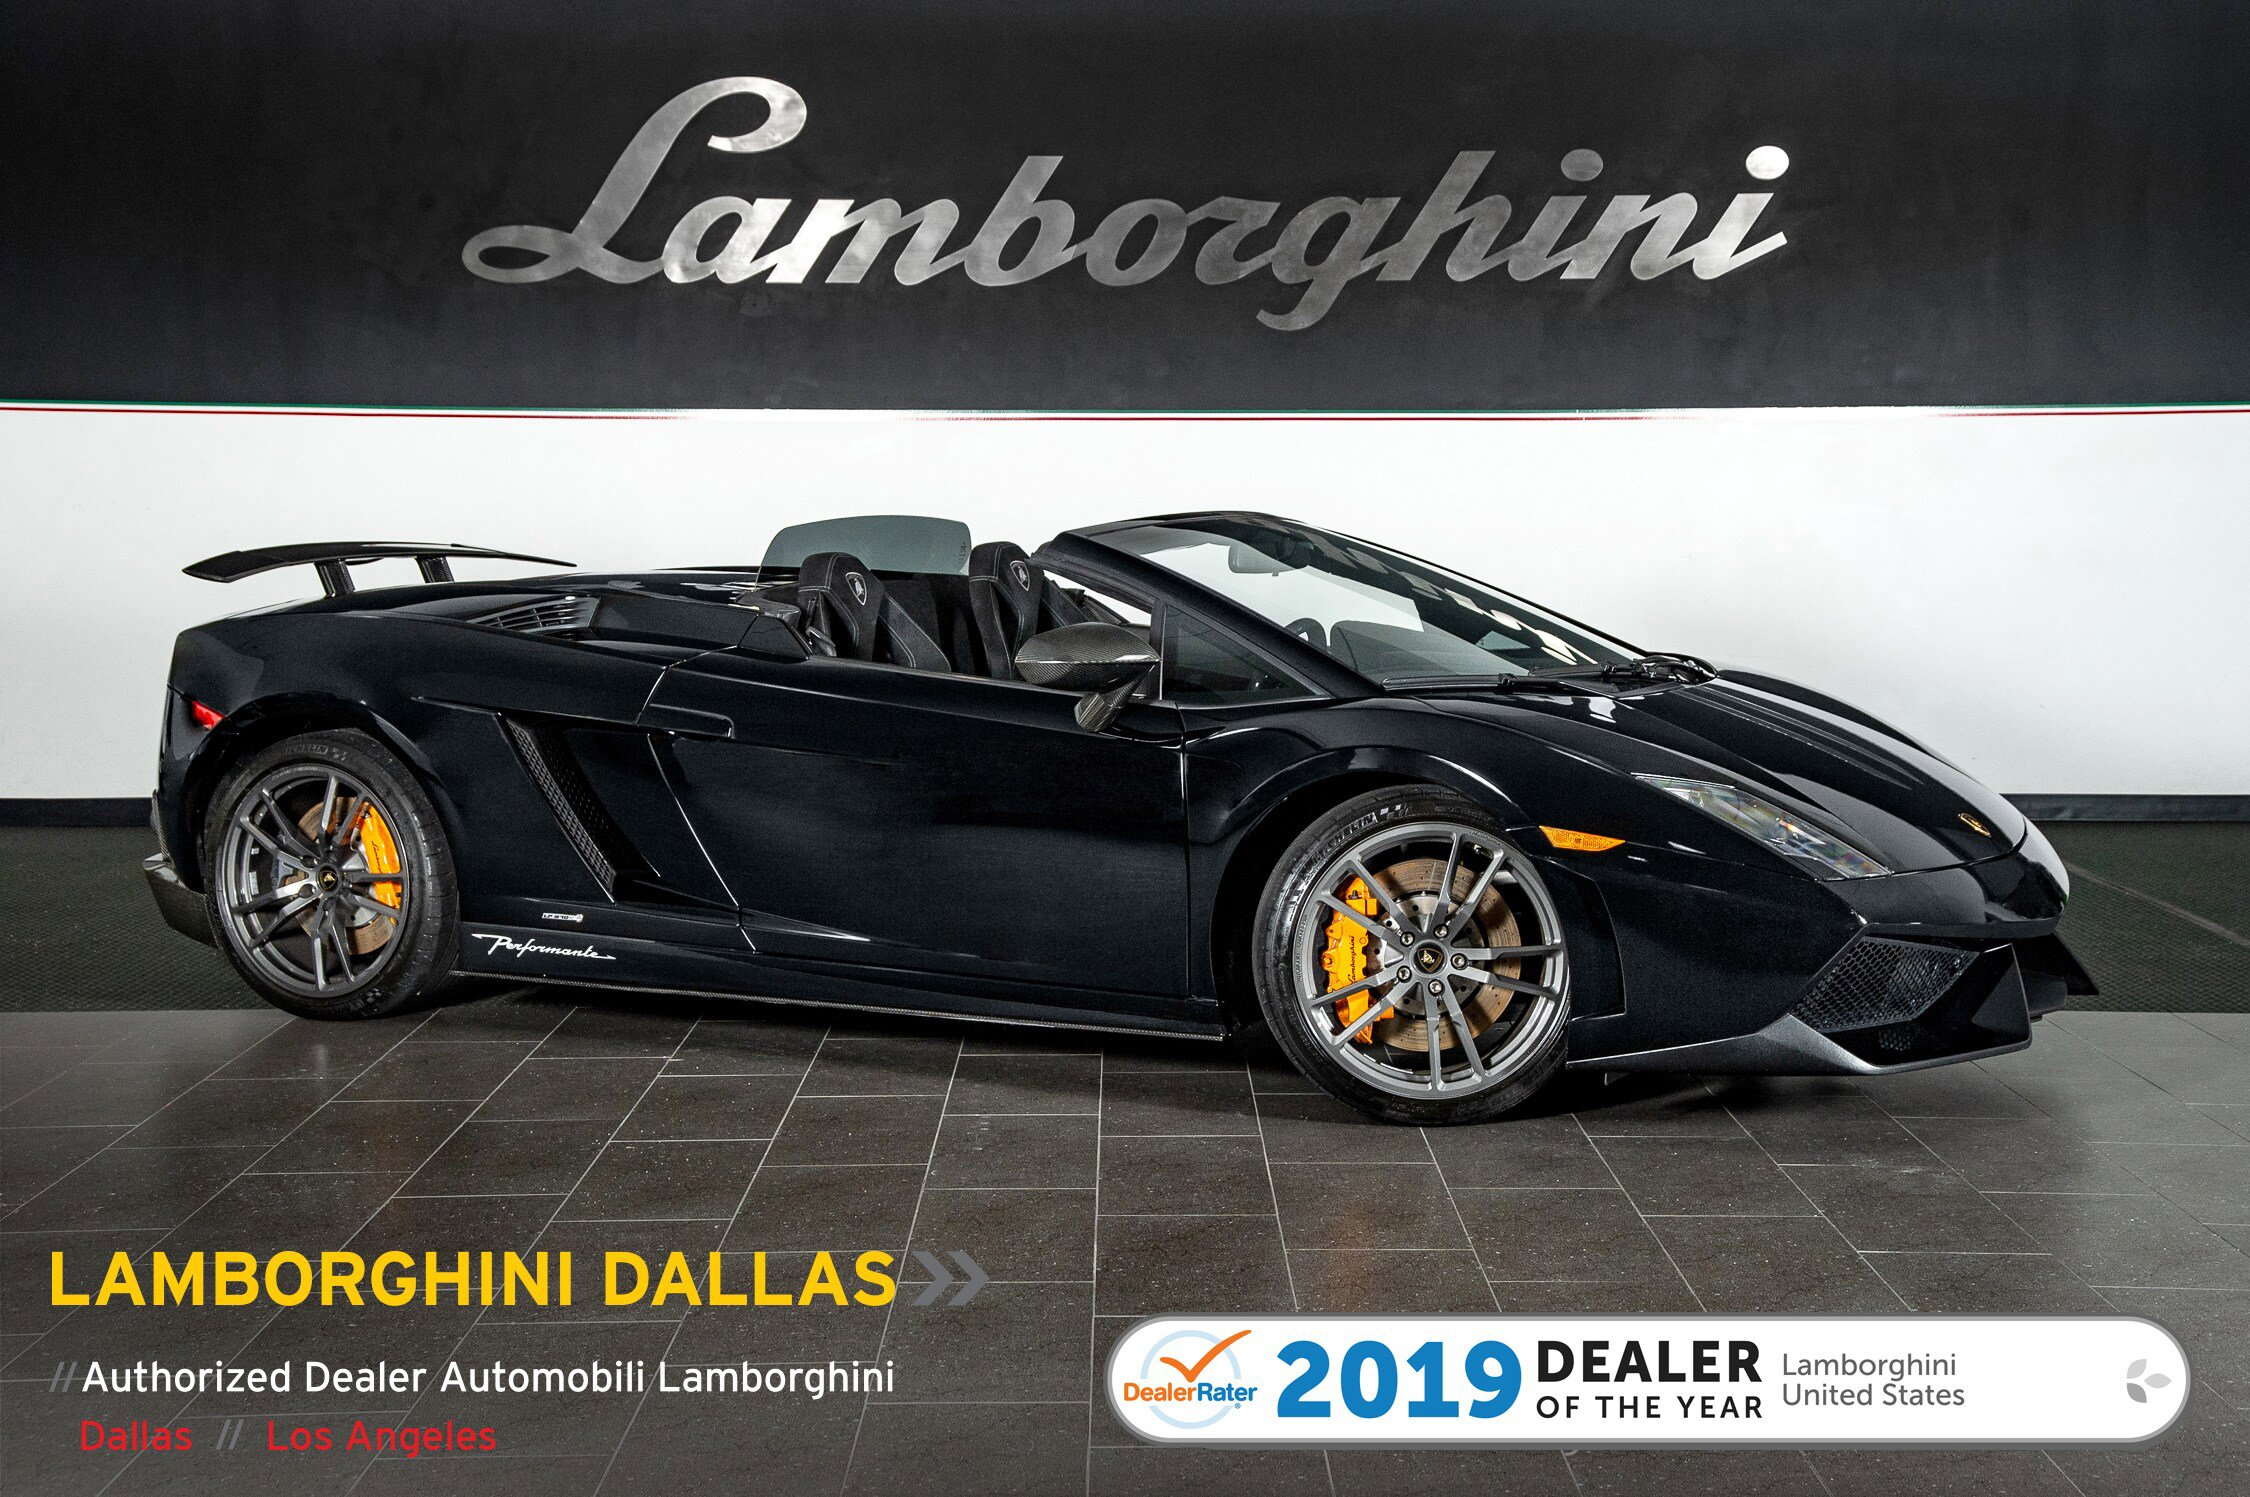 Lamborghini Cars For Sale In Dallas Tx 75250 Autotrader